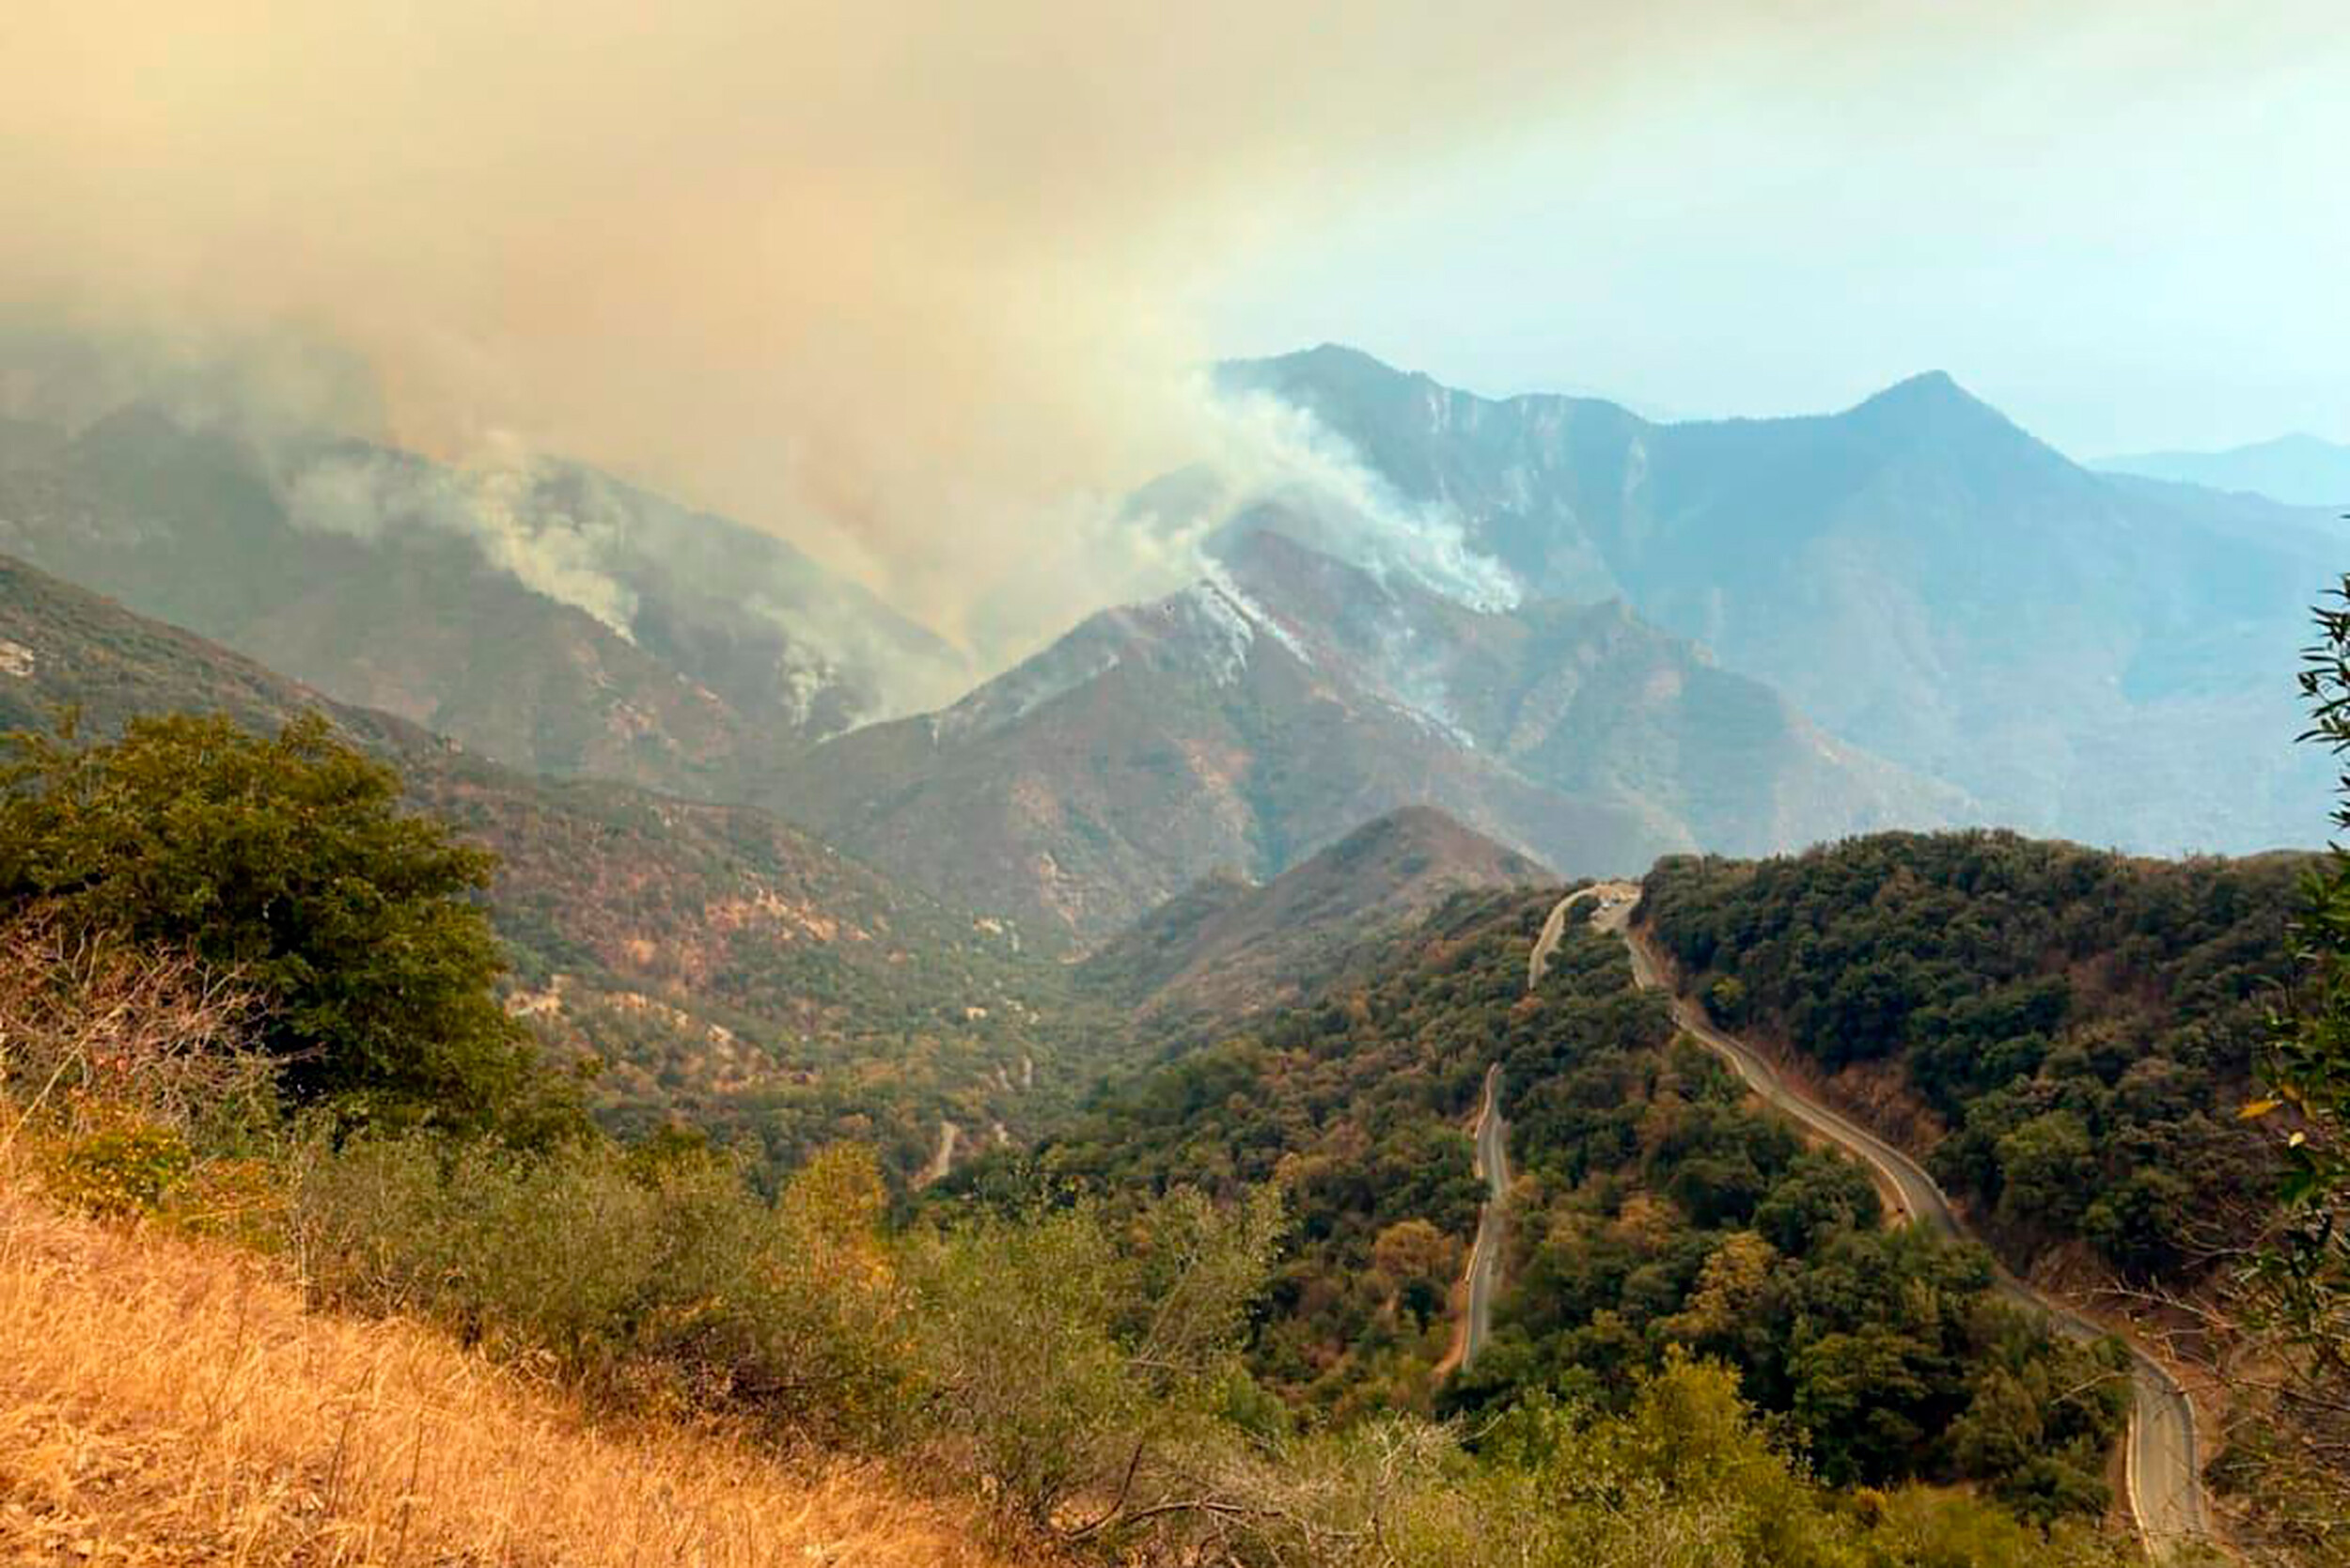 <i>KNP Complex Fire Incident Command/AP</i><br/>A pair of wildfires burning in California's parched Sierra Nevada mountains